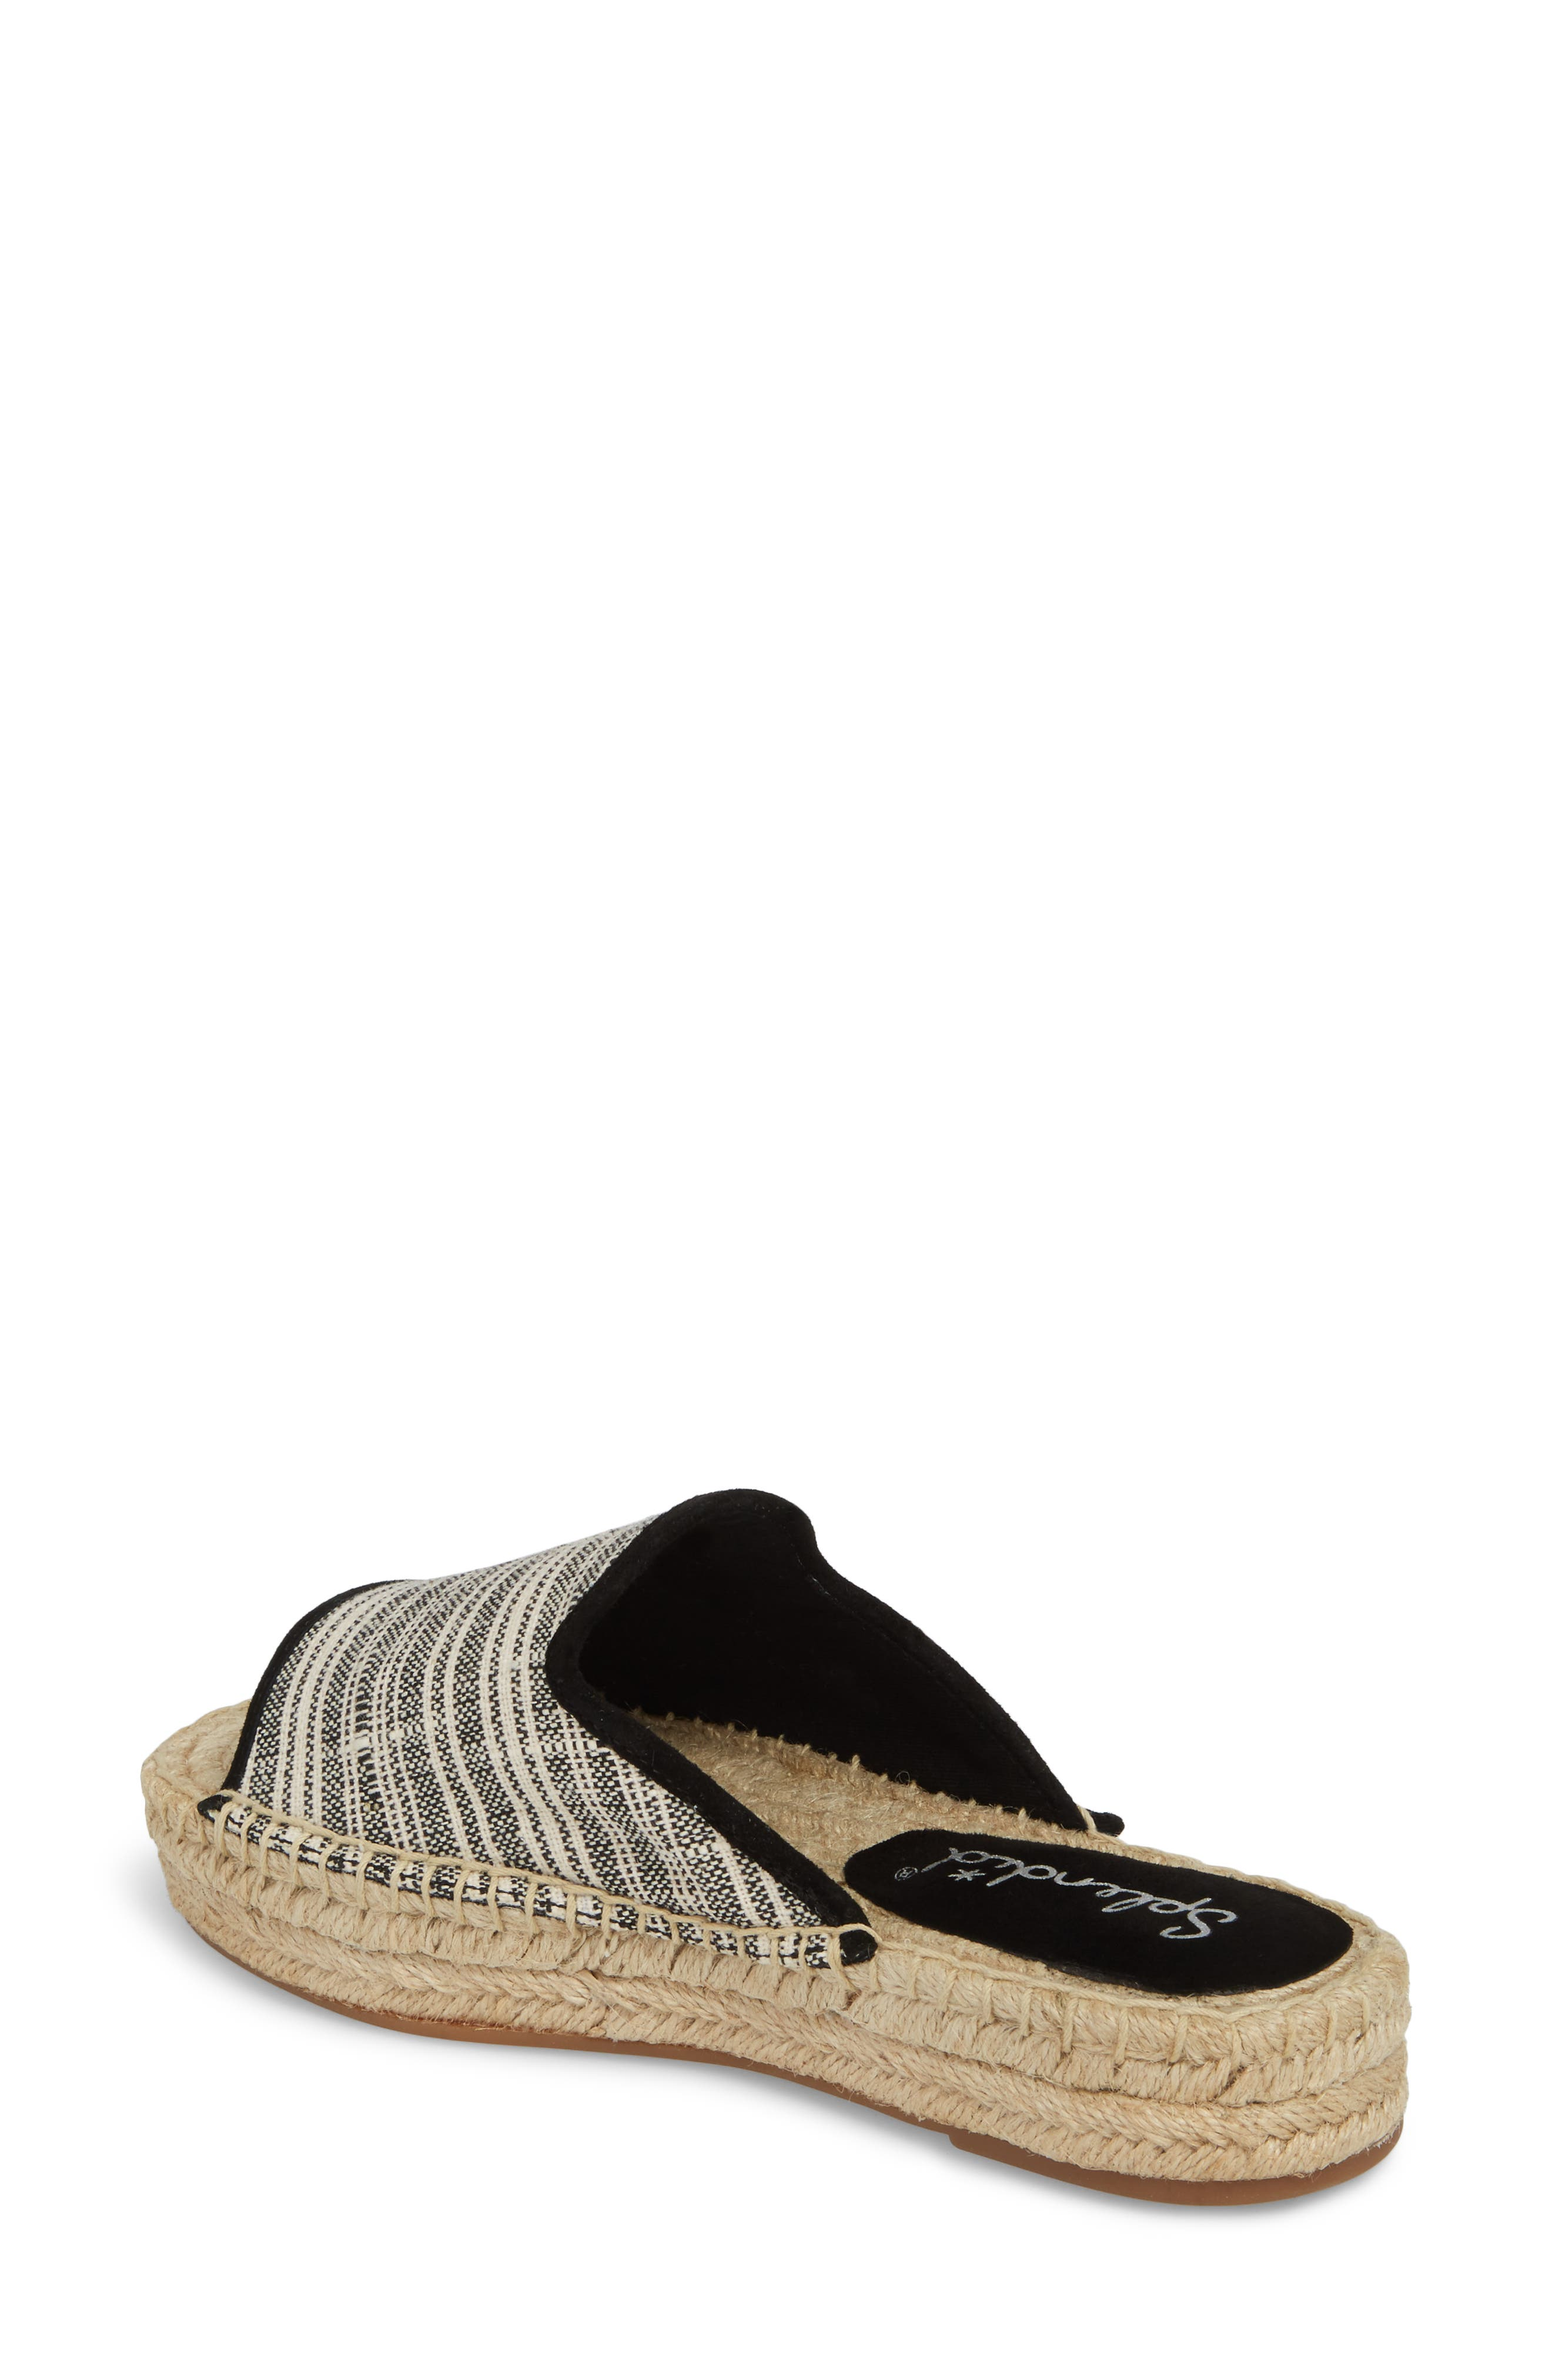 Franci Espadrille Slide Sandal,                             Alternate thumbnail 2, color,                             BLACK/ NATURAL FABRIC